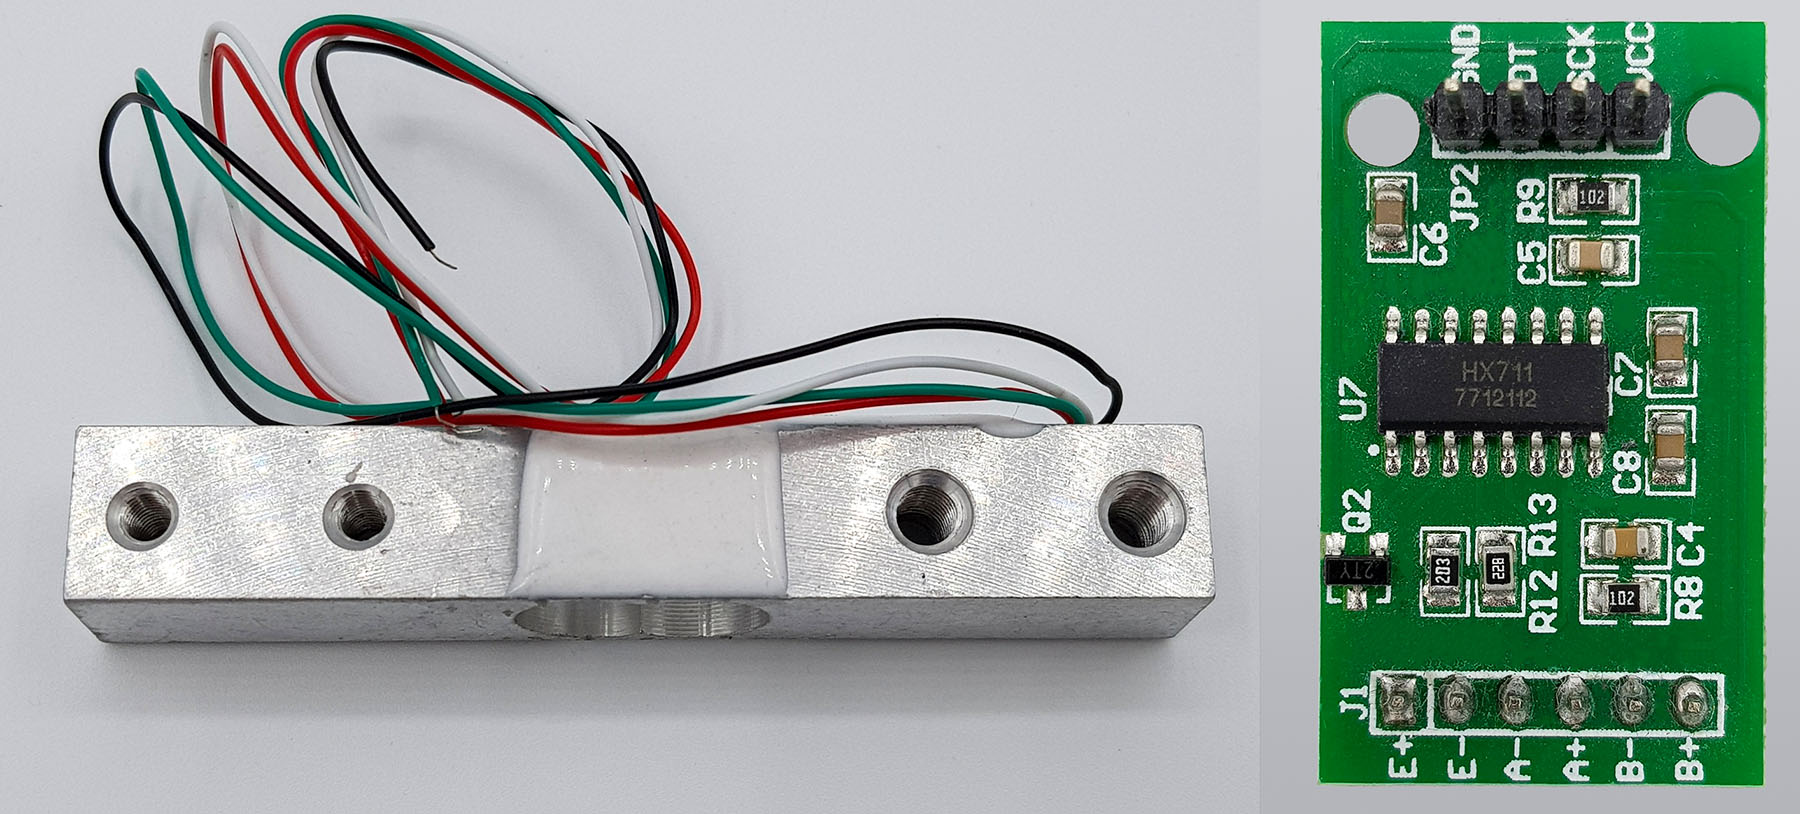 Typical kit of load cell and HX711 module